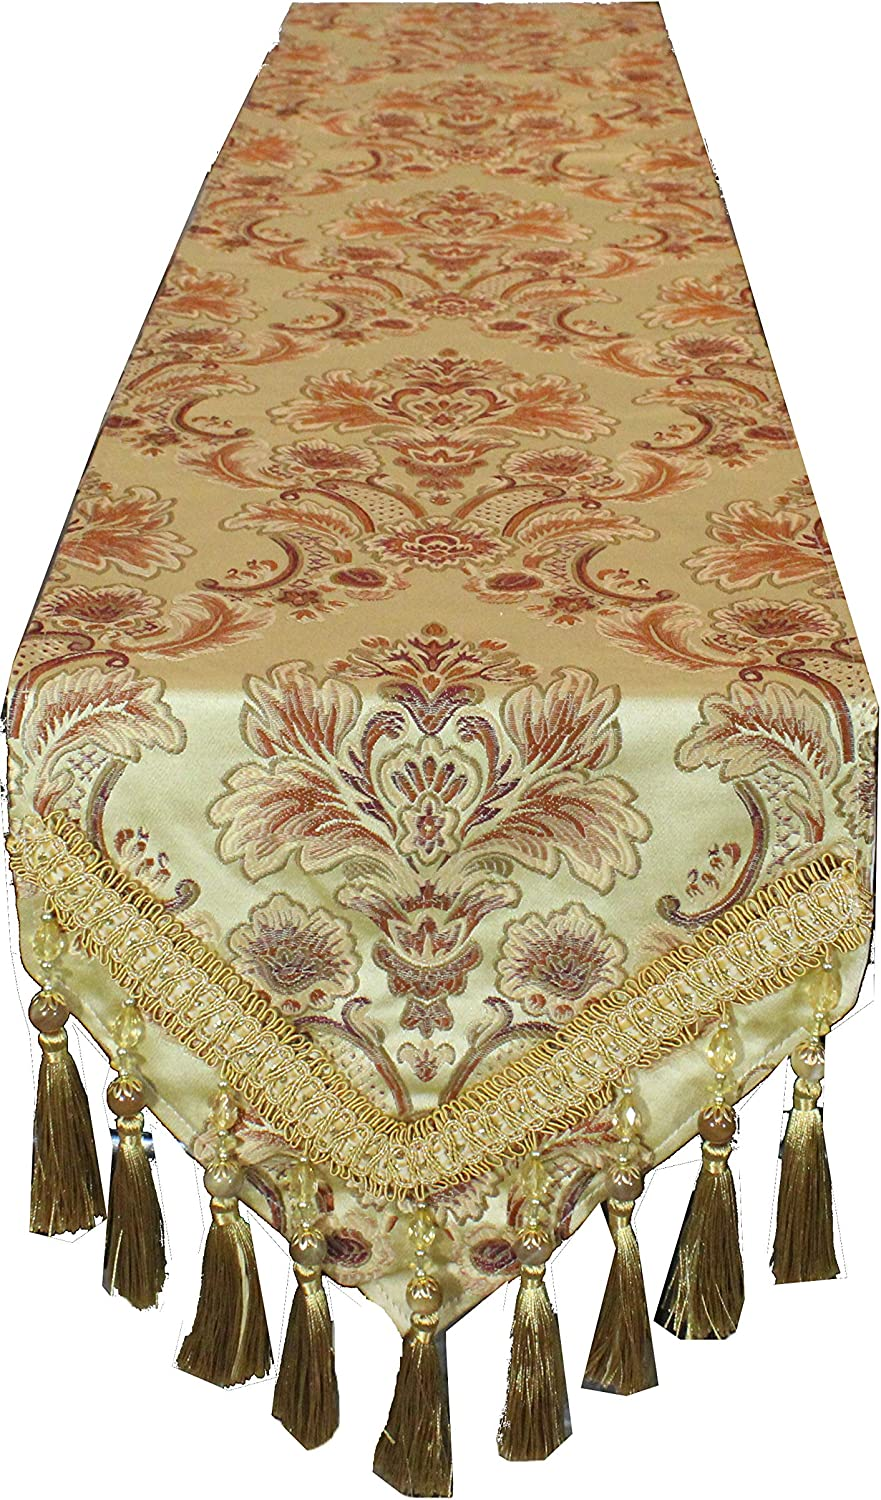 Tulla Traditional Omaha Mall Floral Design Table Tassels Sales for sale Runner Embro with